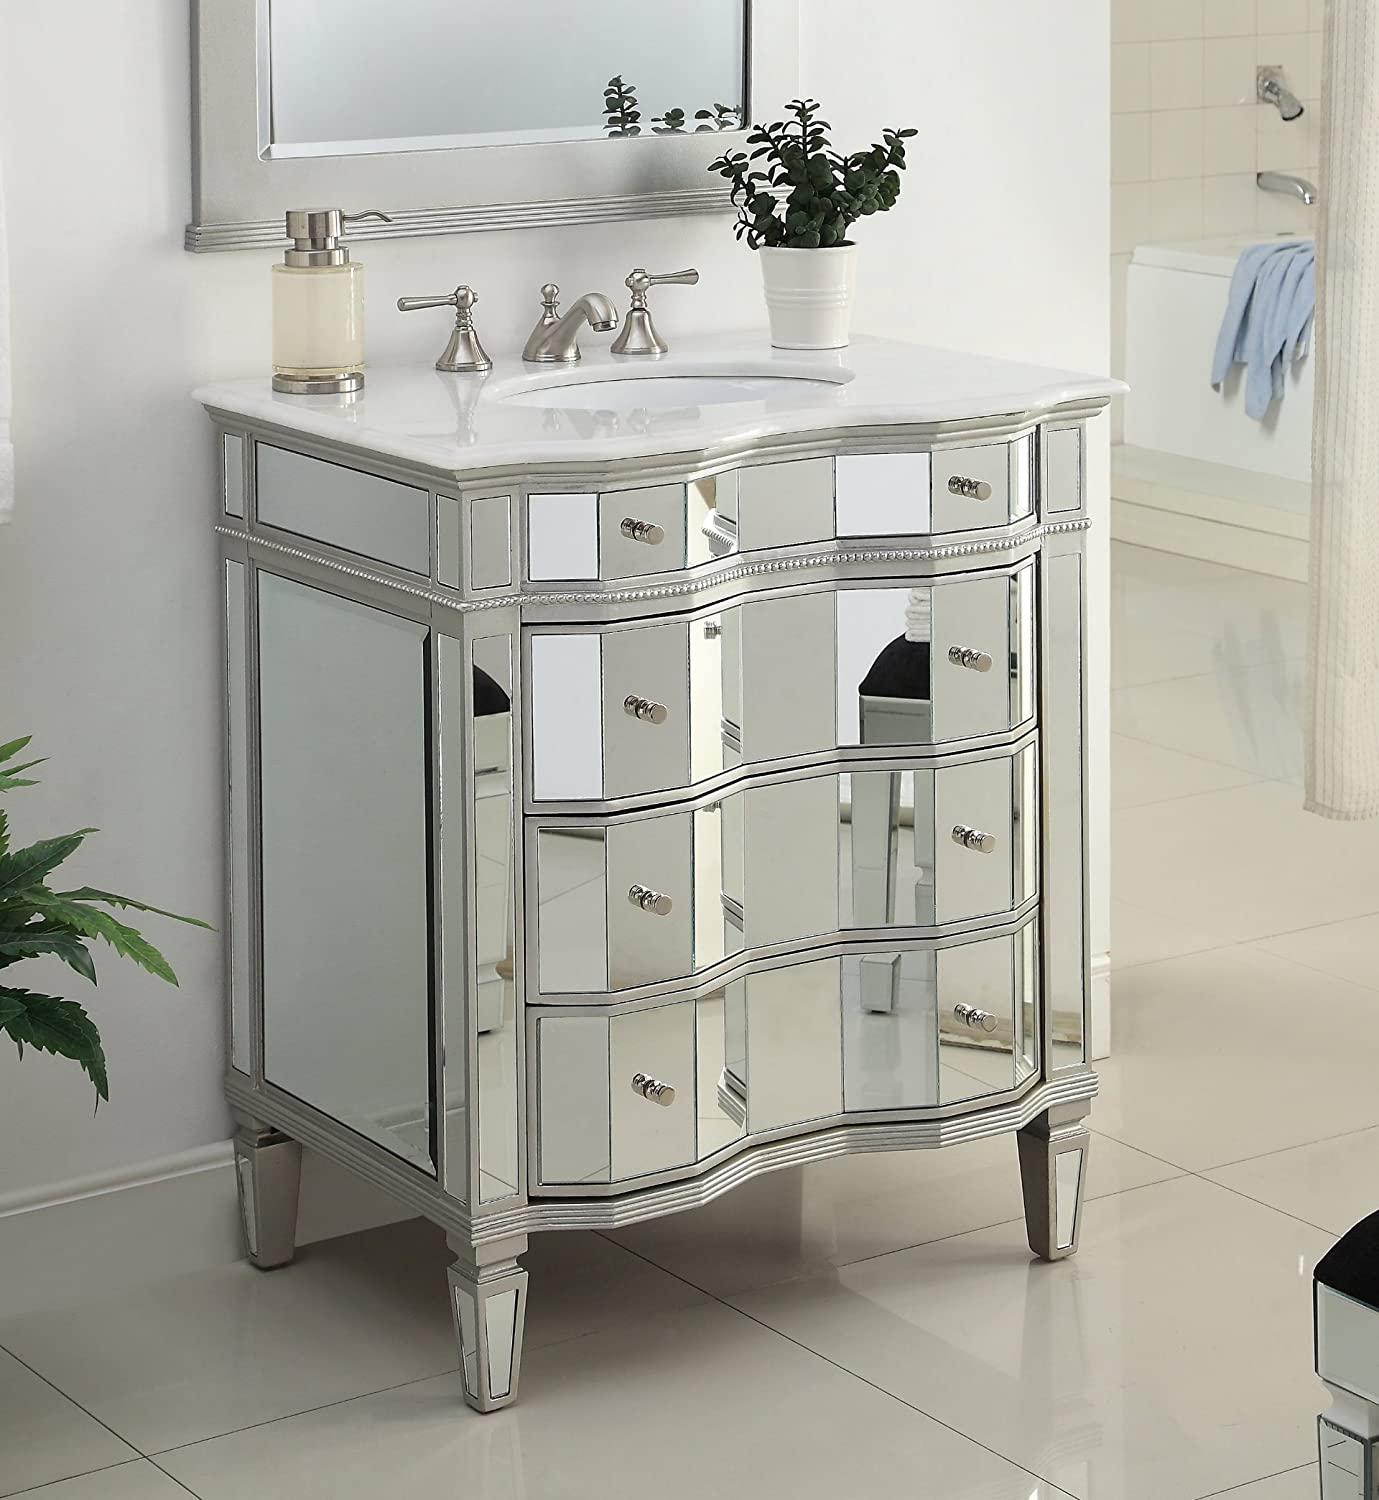 36  Mirrored Bathroom Sink Vanity Model BWV 025 Ashley Amazon com